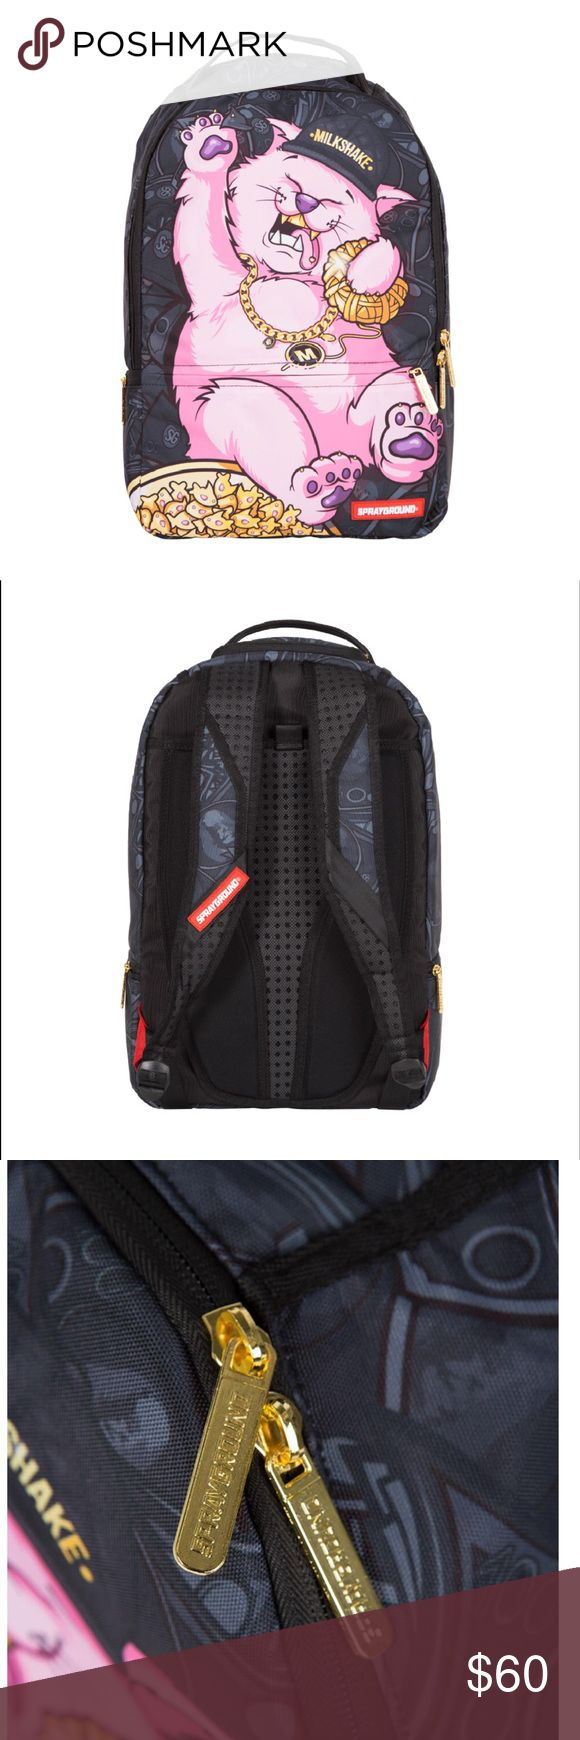 "Spray Ground ""KITTEN LIFE"" BackPack, NWT. Spray Ground ""KITTEN LIFE"" BackPack, NWT. Out before release, originally priced at $120.00. Spray Ground Bags Backpacks"